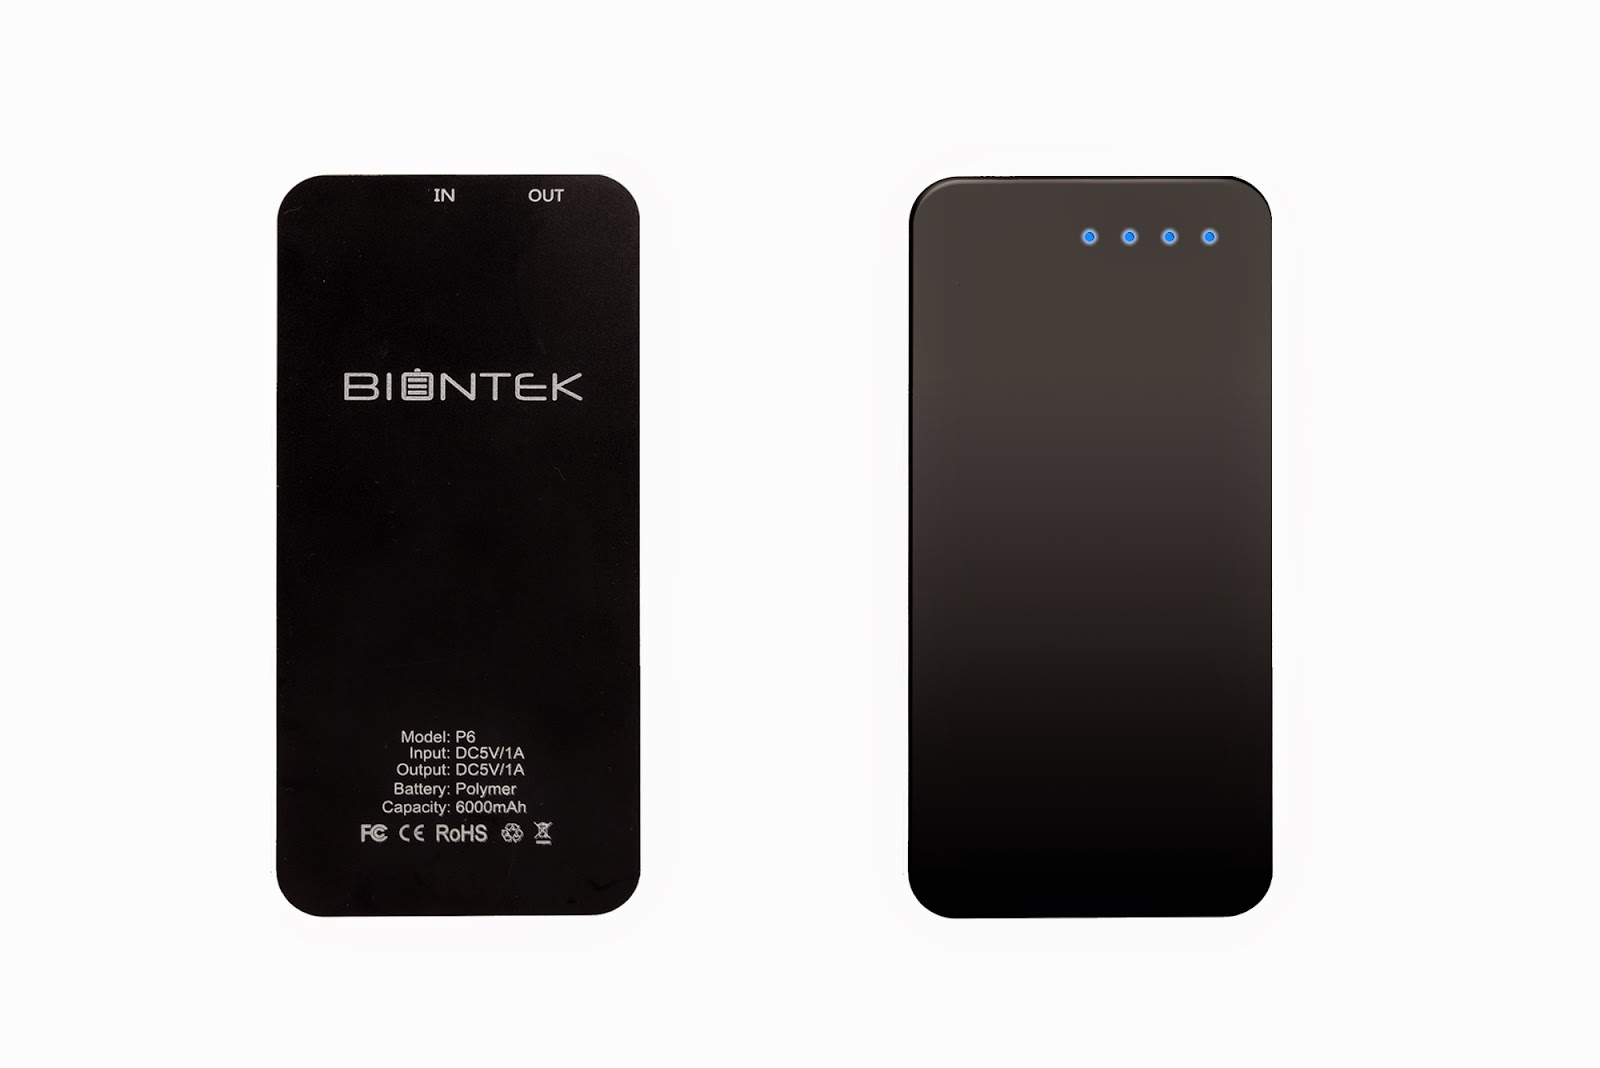 http://www.amazon.com/Mobile-Charger-6000mah-iPhone-Samsung/dp/B00PK2KJGS/ref=sr_1_1?ie=UTF8&qid=1426904388&sr=8-1&keywords=biontek+charger